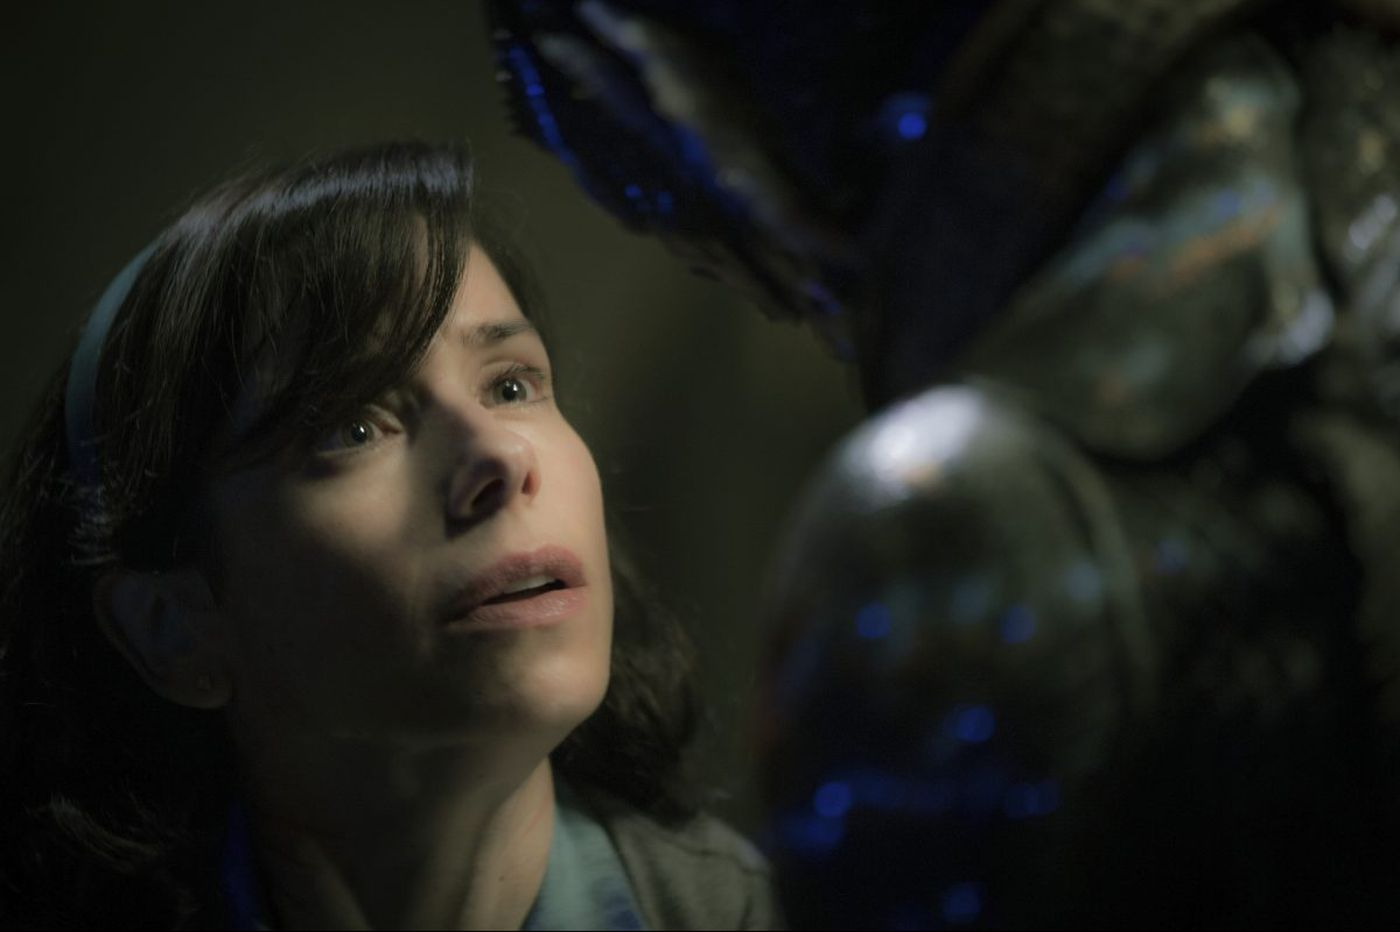 'Shape of Water': Could Guillermo del Toro's sci-fi romance clean up this awards season?